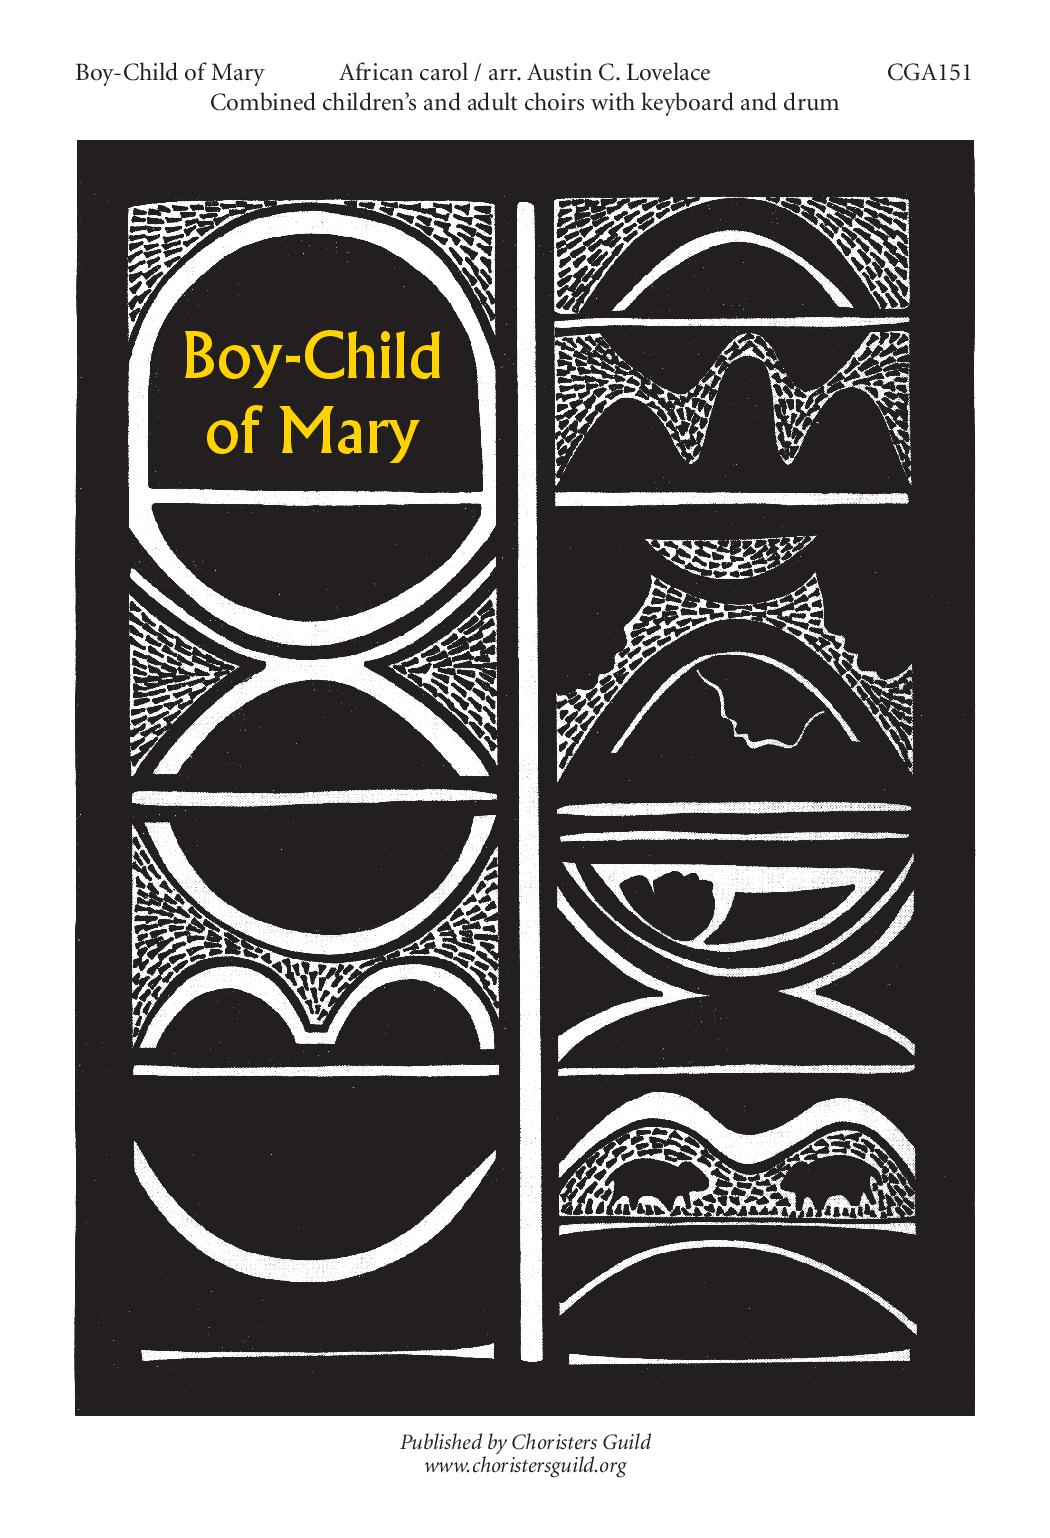 Boy-Child of Mary